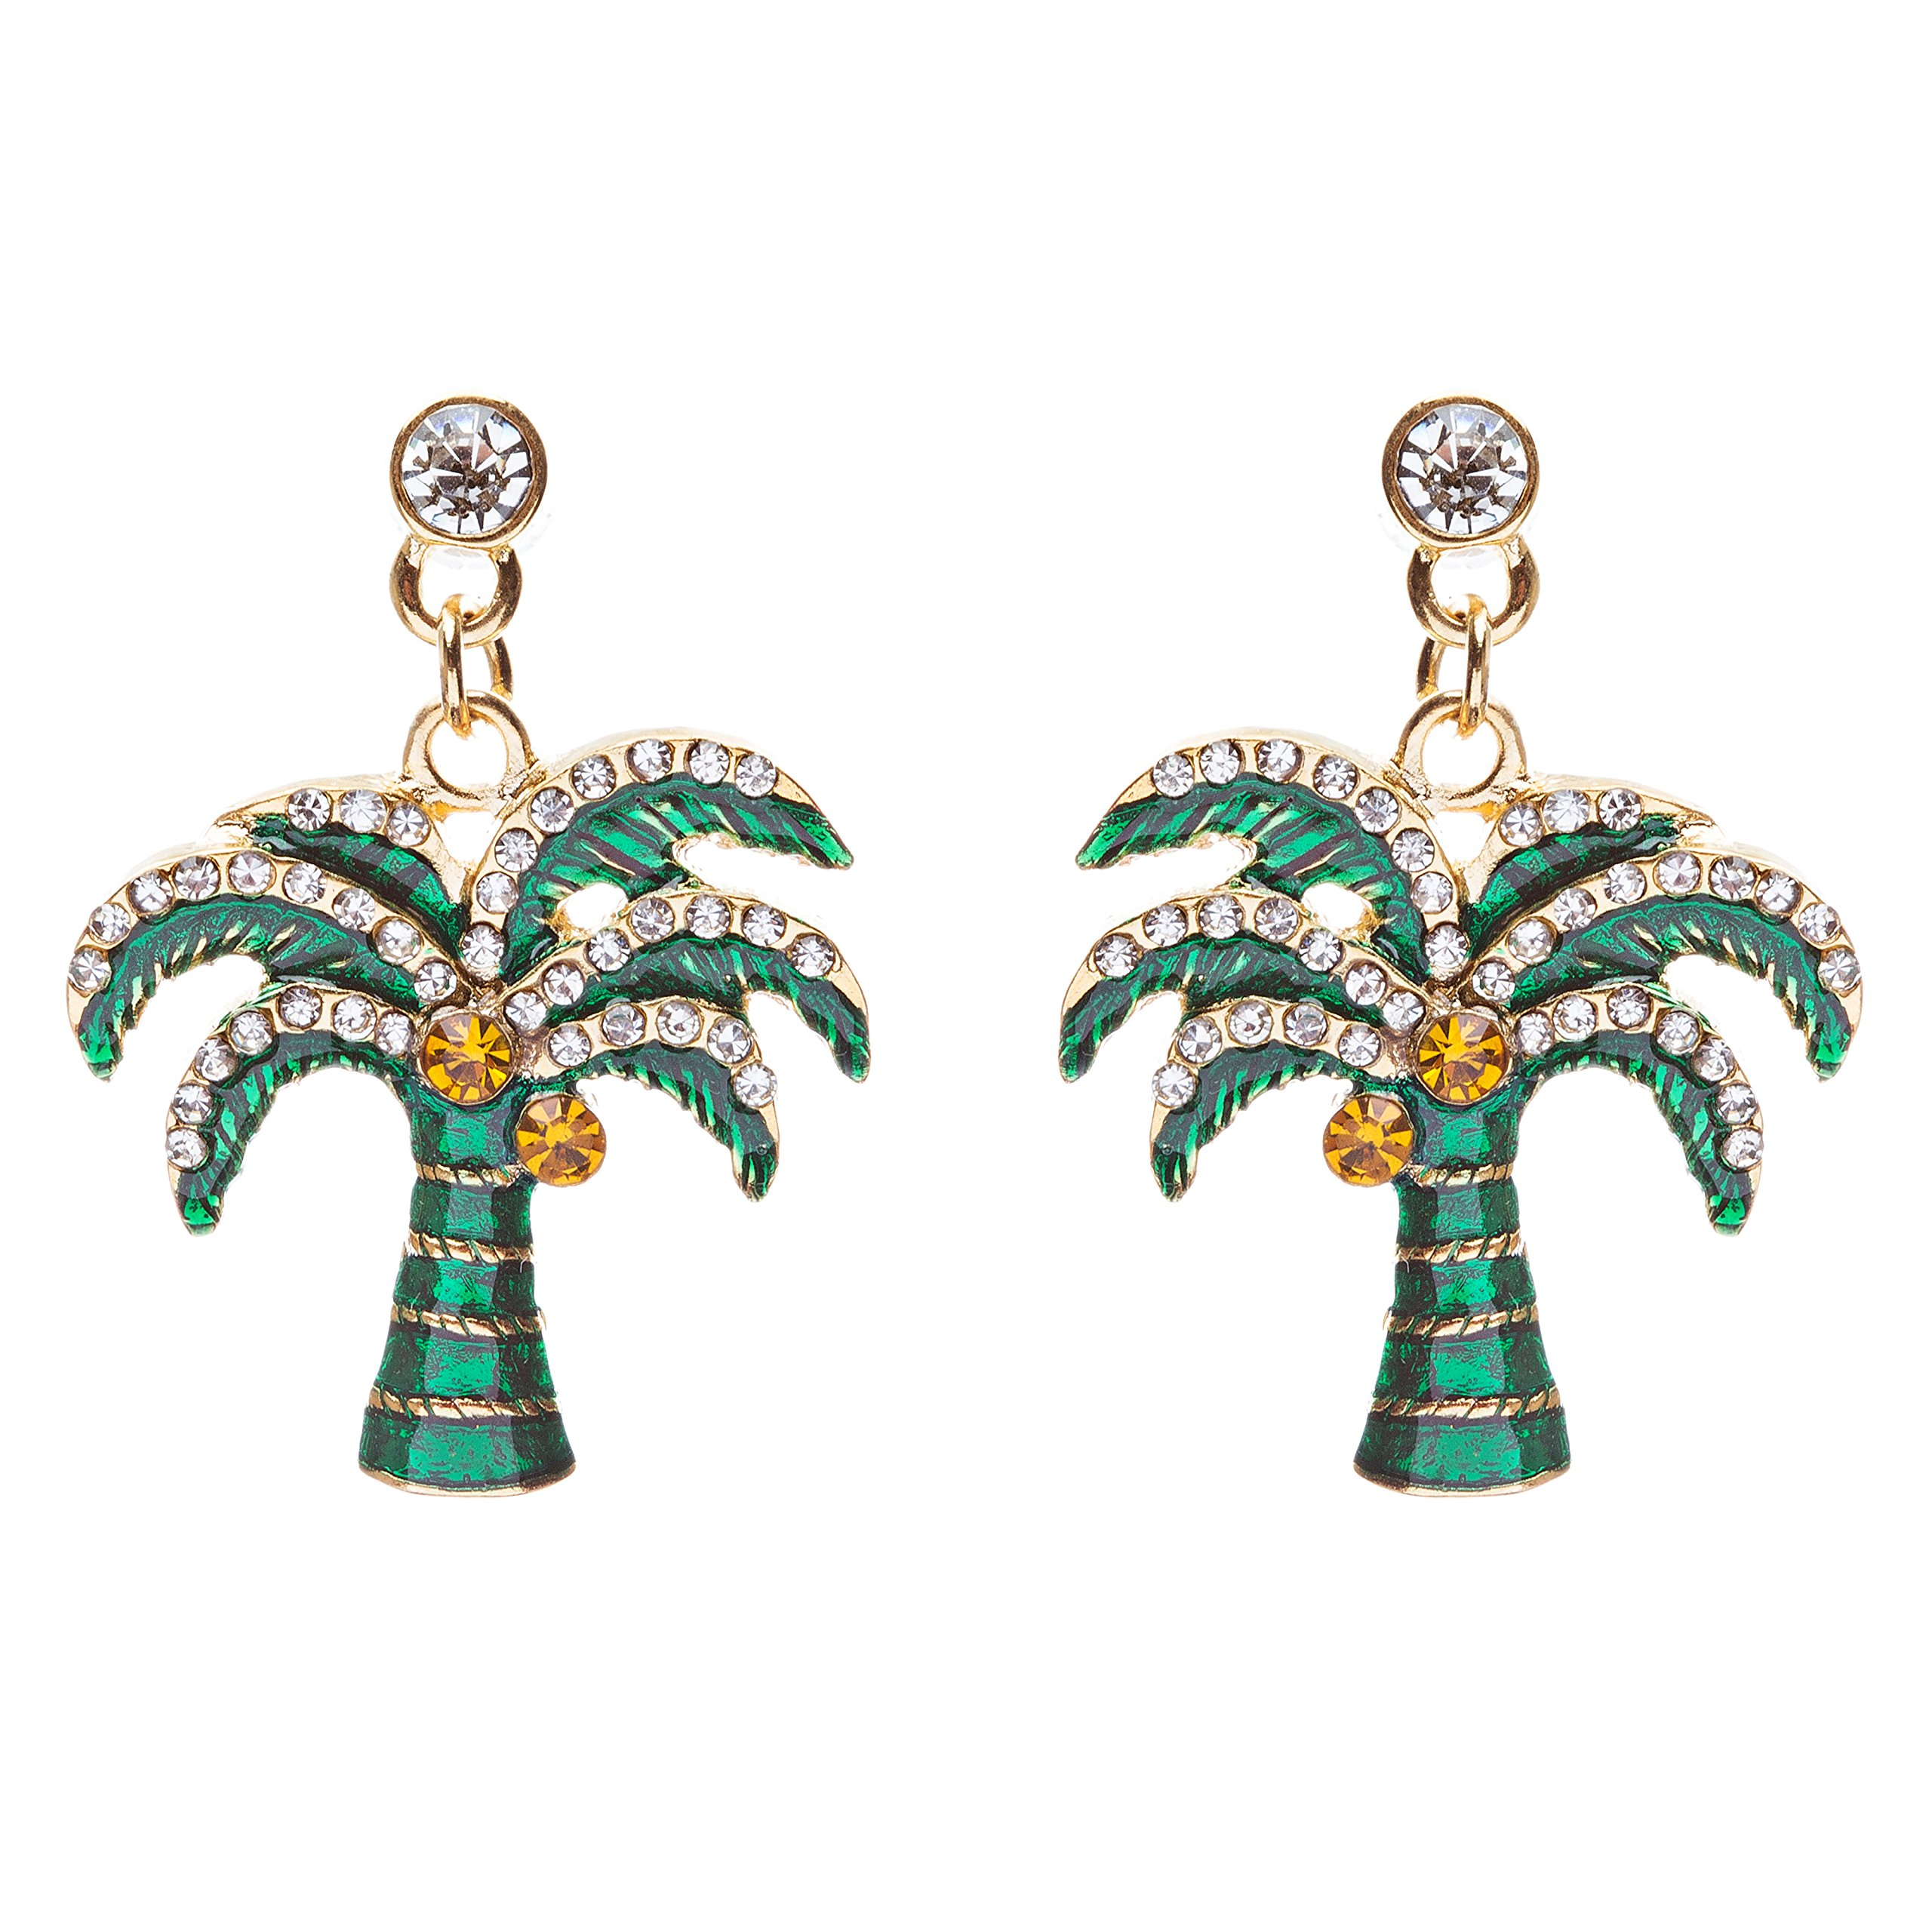 ACCESSORIESFOREVER Women Stylish Crystal Rhinestone Pretty Palm Tree Charm Earrings E861 Green Gold